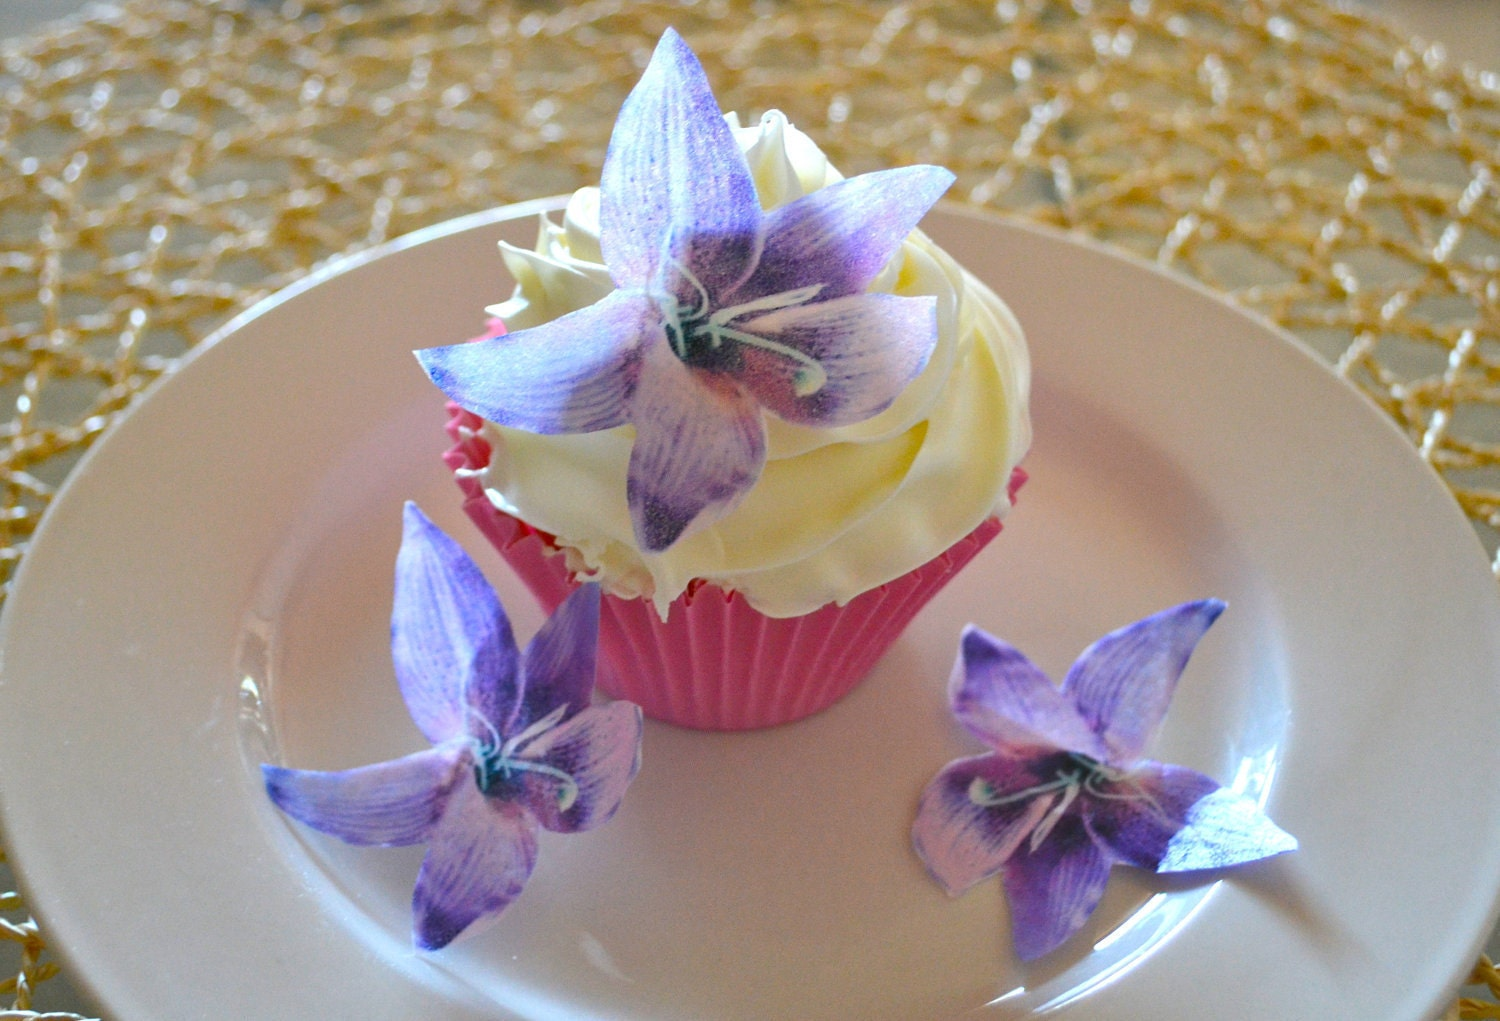 Edible Flowers For Cake Decorating : Edible Lily Flower - Purple set of 12 Cake & Cupcake ...